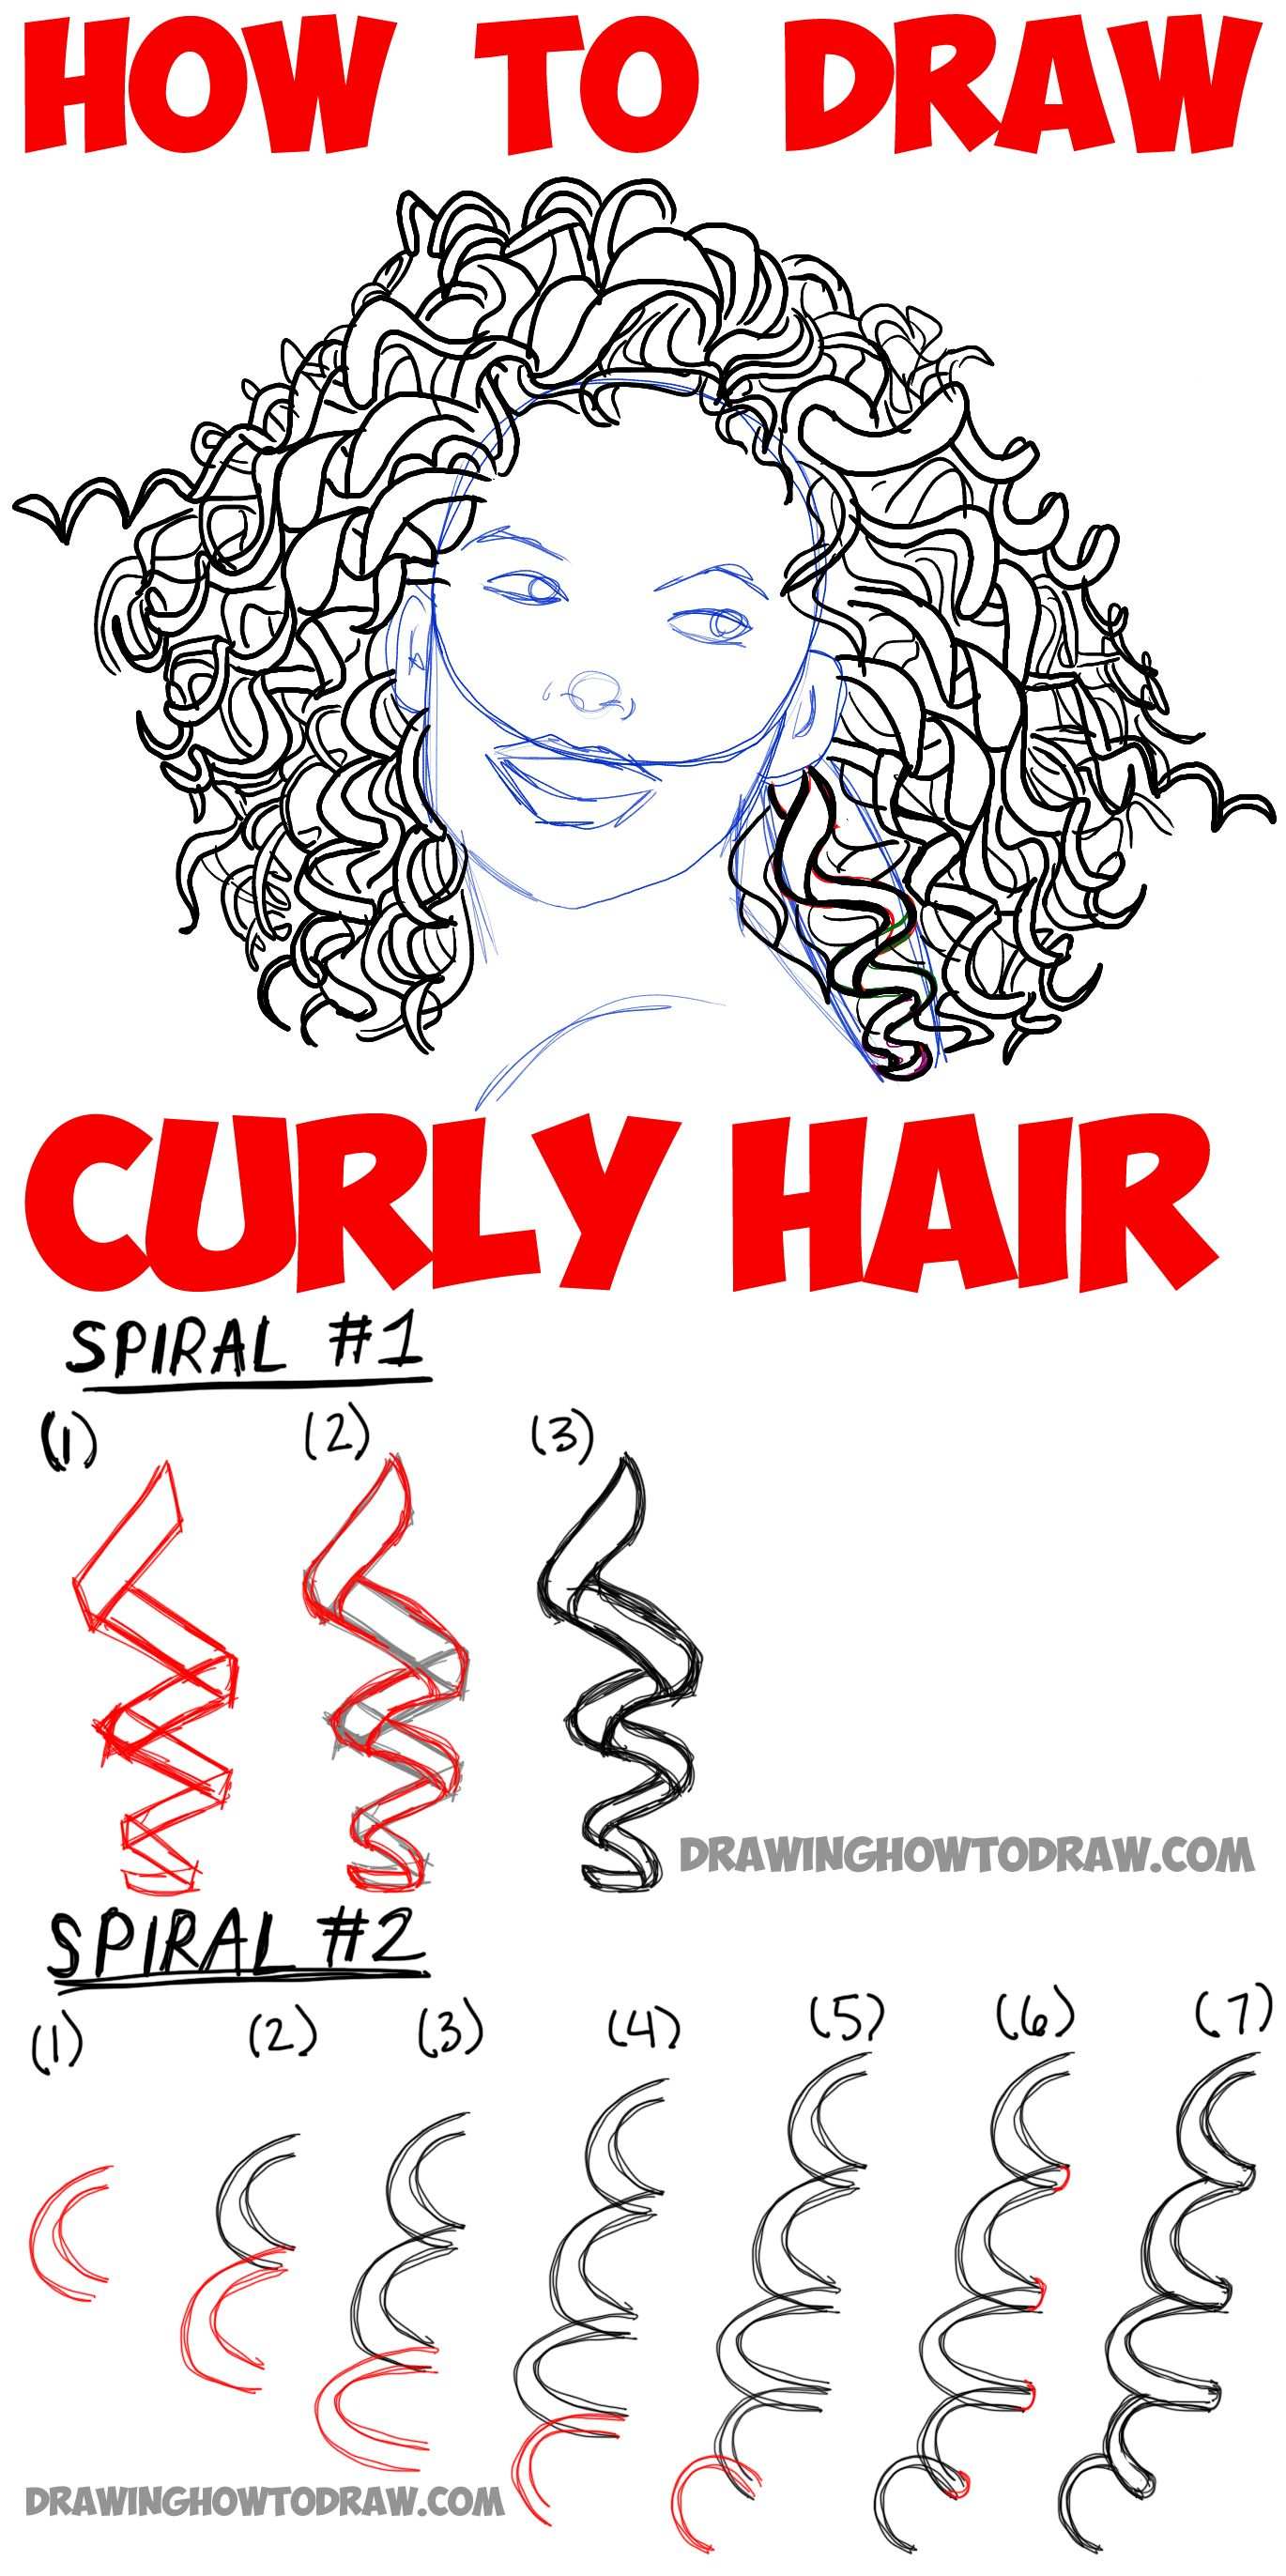 How To Draw Curly Hair Drawing Spiral Curls Tutorial How To Draw Step By Step Drawing Tutorials How To Draw Hair Curly Hair Styles Curly Hair Drawing